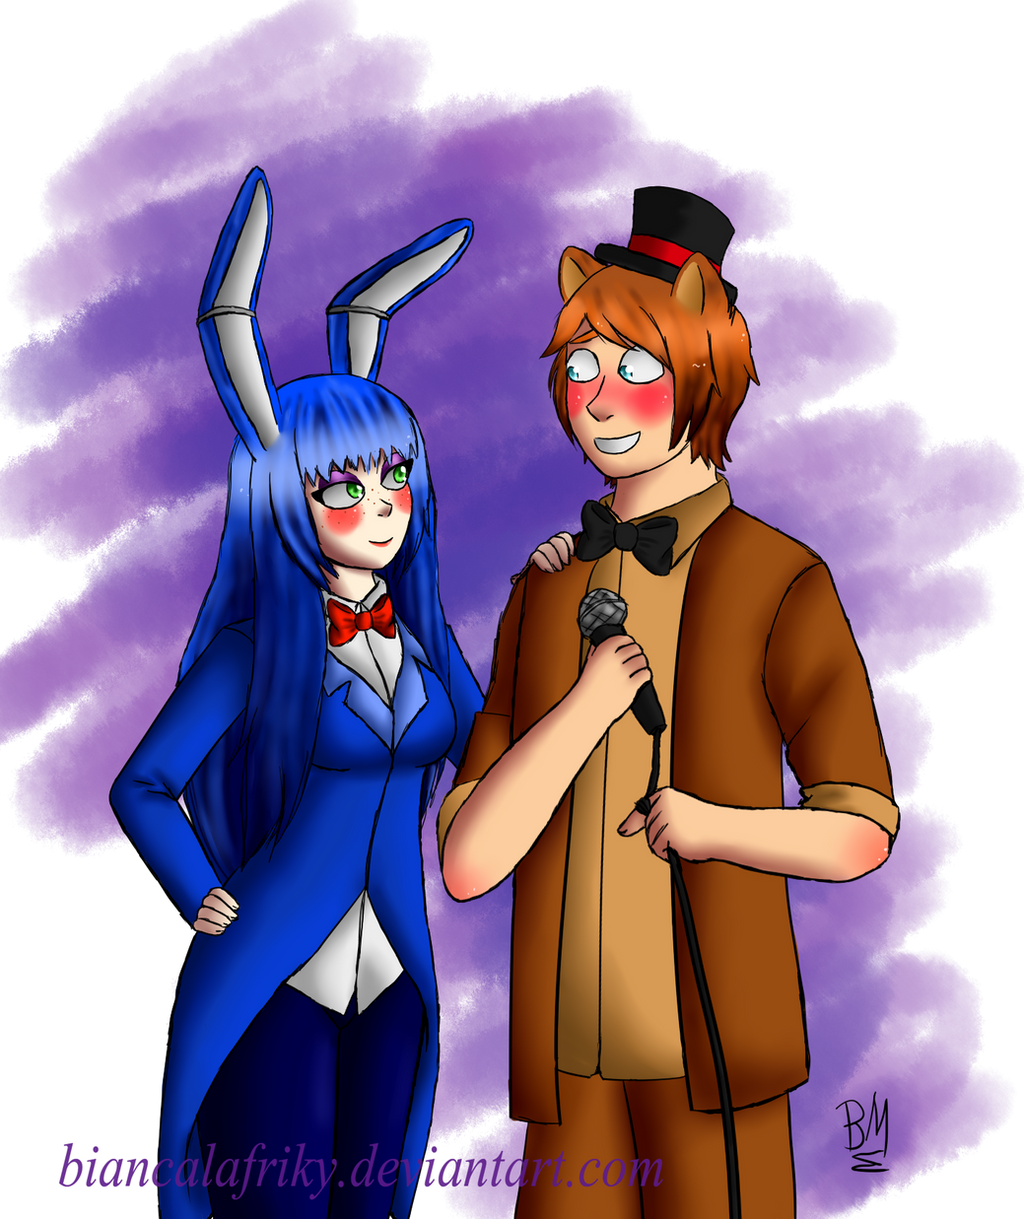 Fnaf bonbon x toy freddy by biancalafriky on deviantart